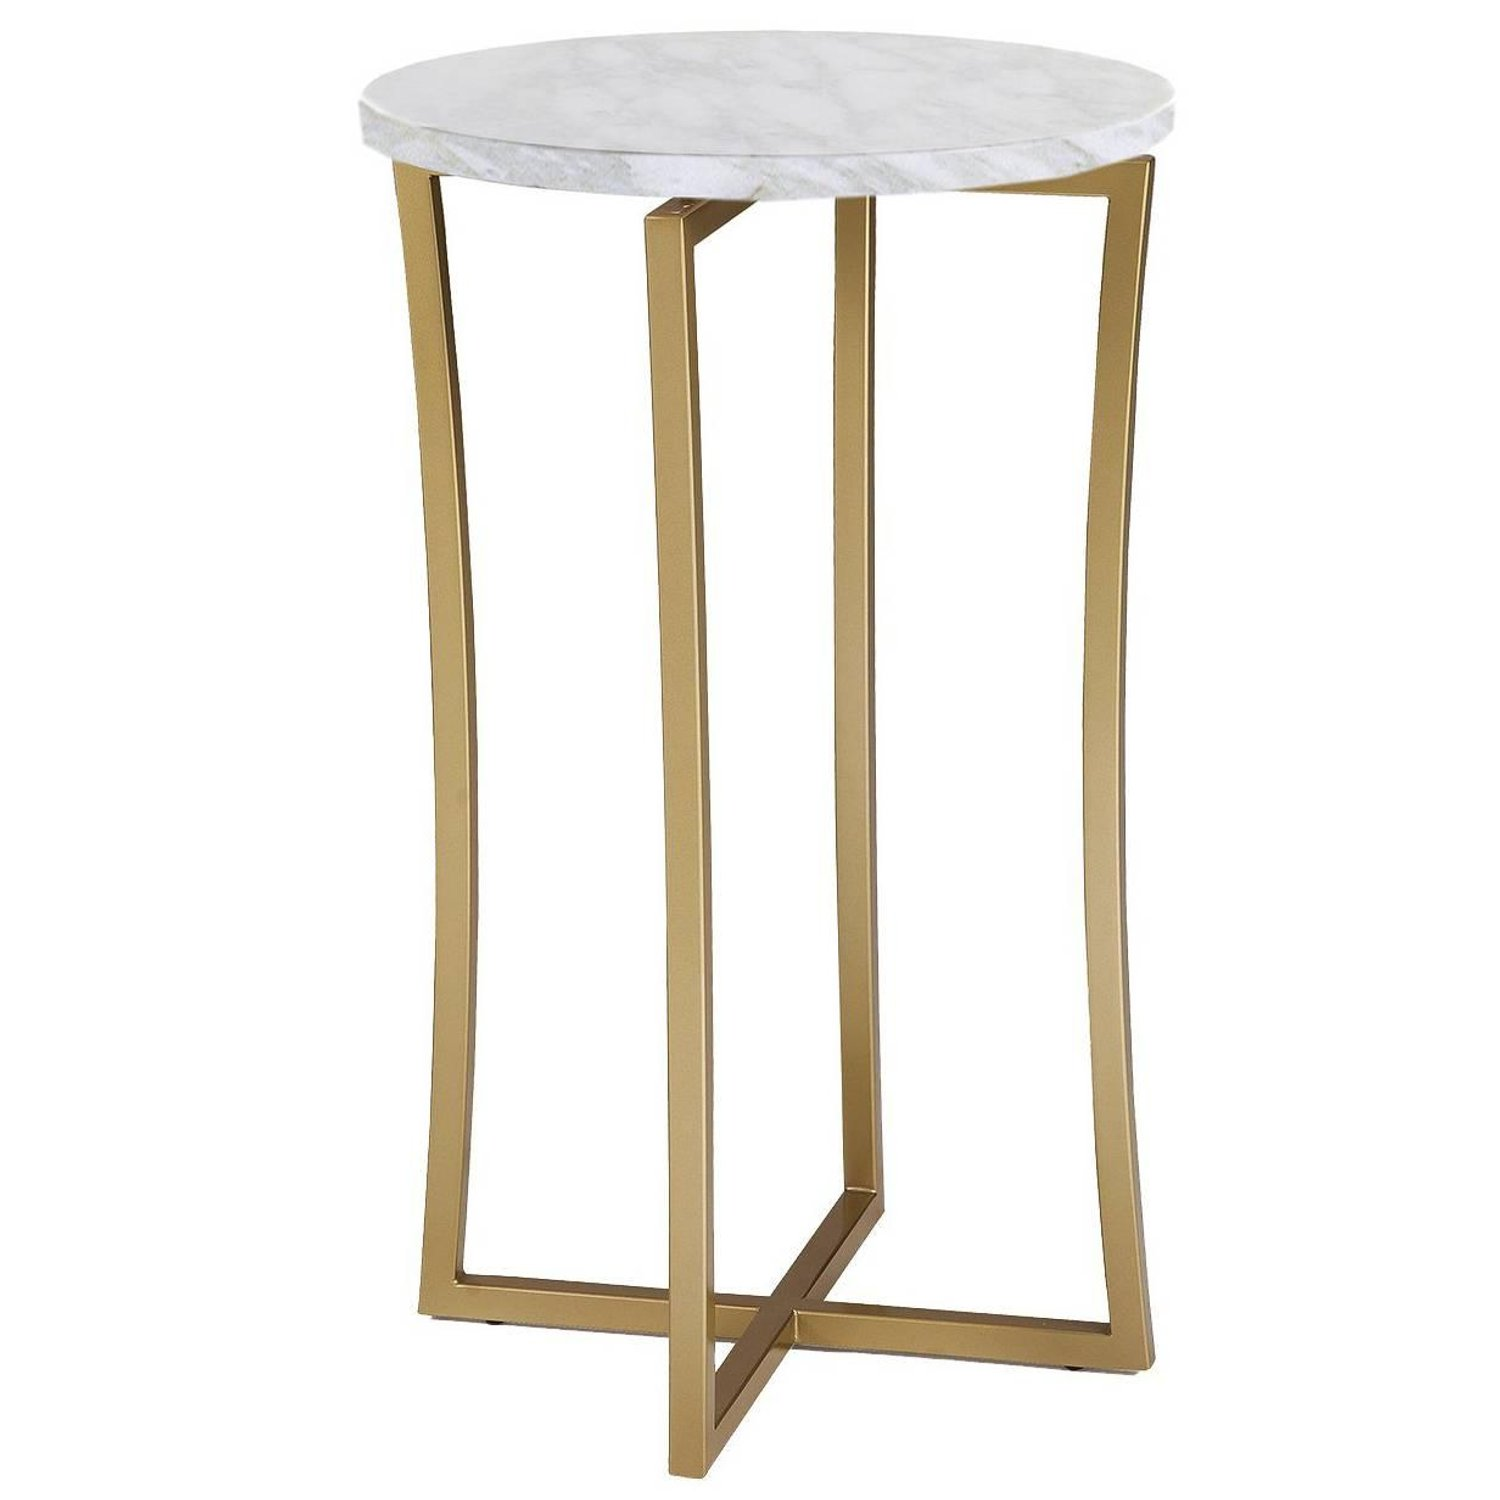 tall side table with calcatta marble for master outdoor accent west elm telescoping lamp designer white coffee wooden patio umbrella hole large decorative wall clocks end plans